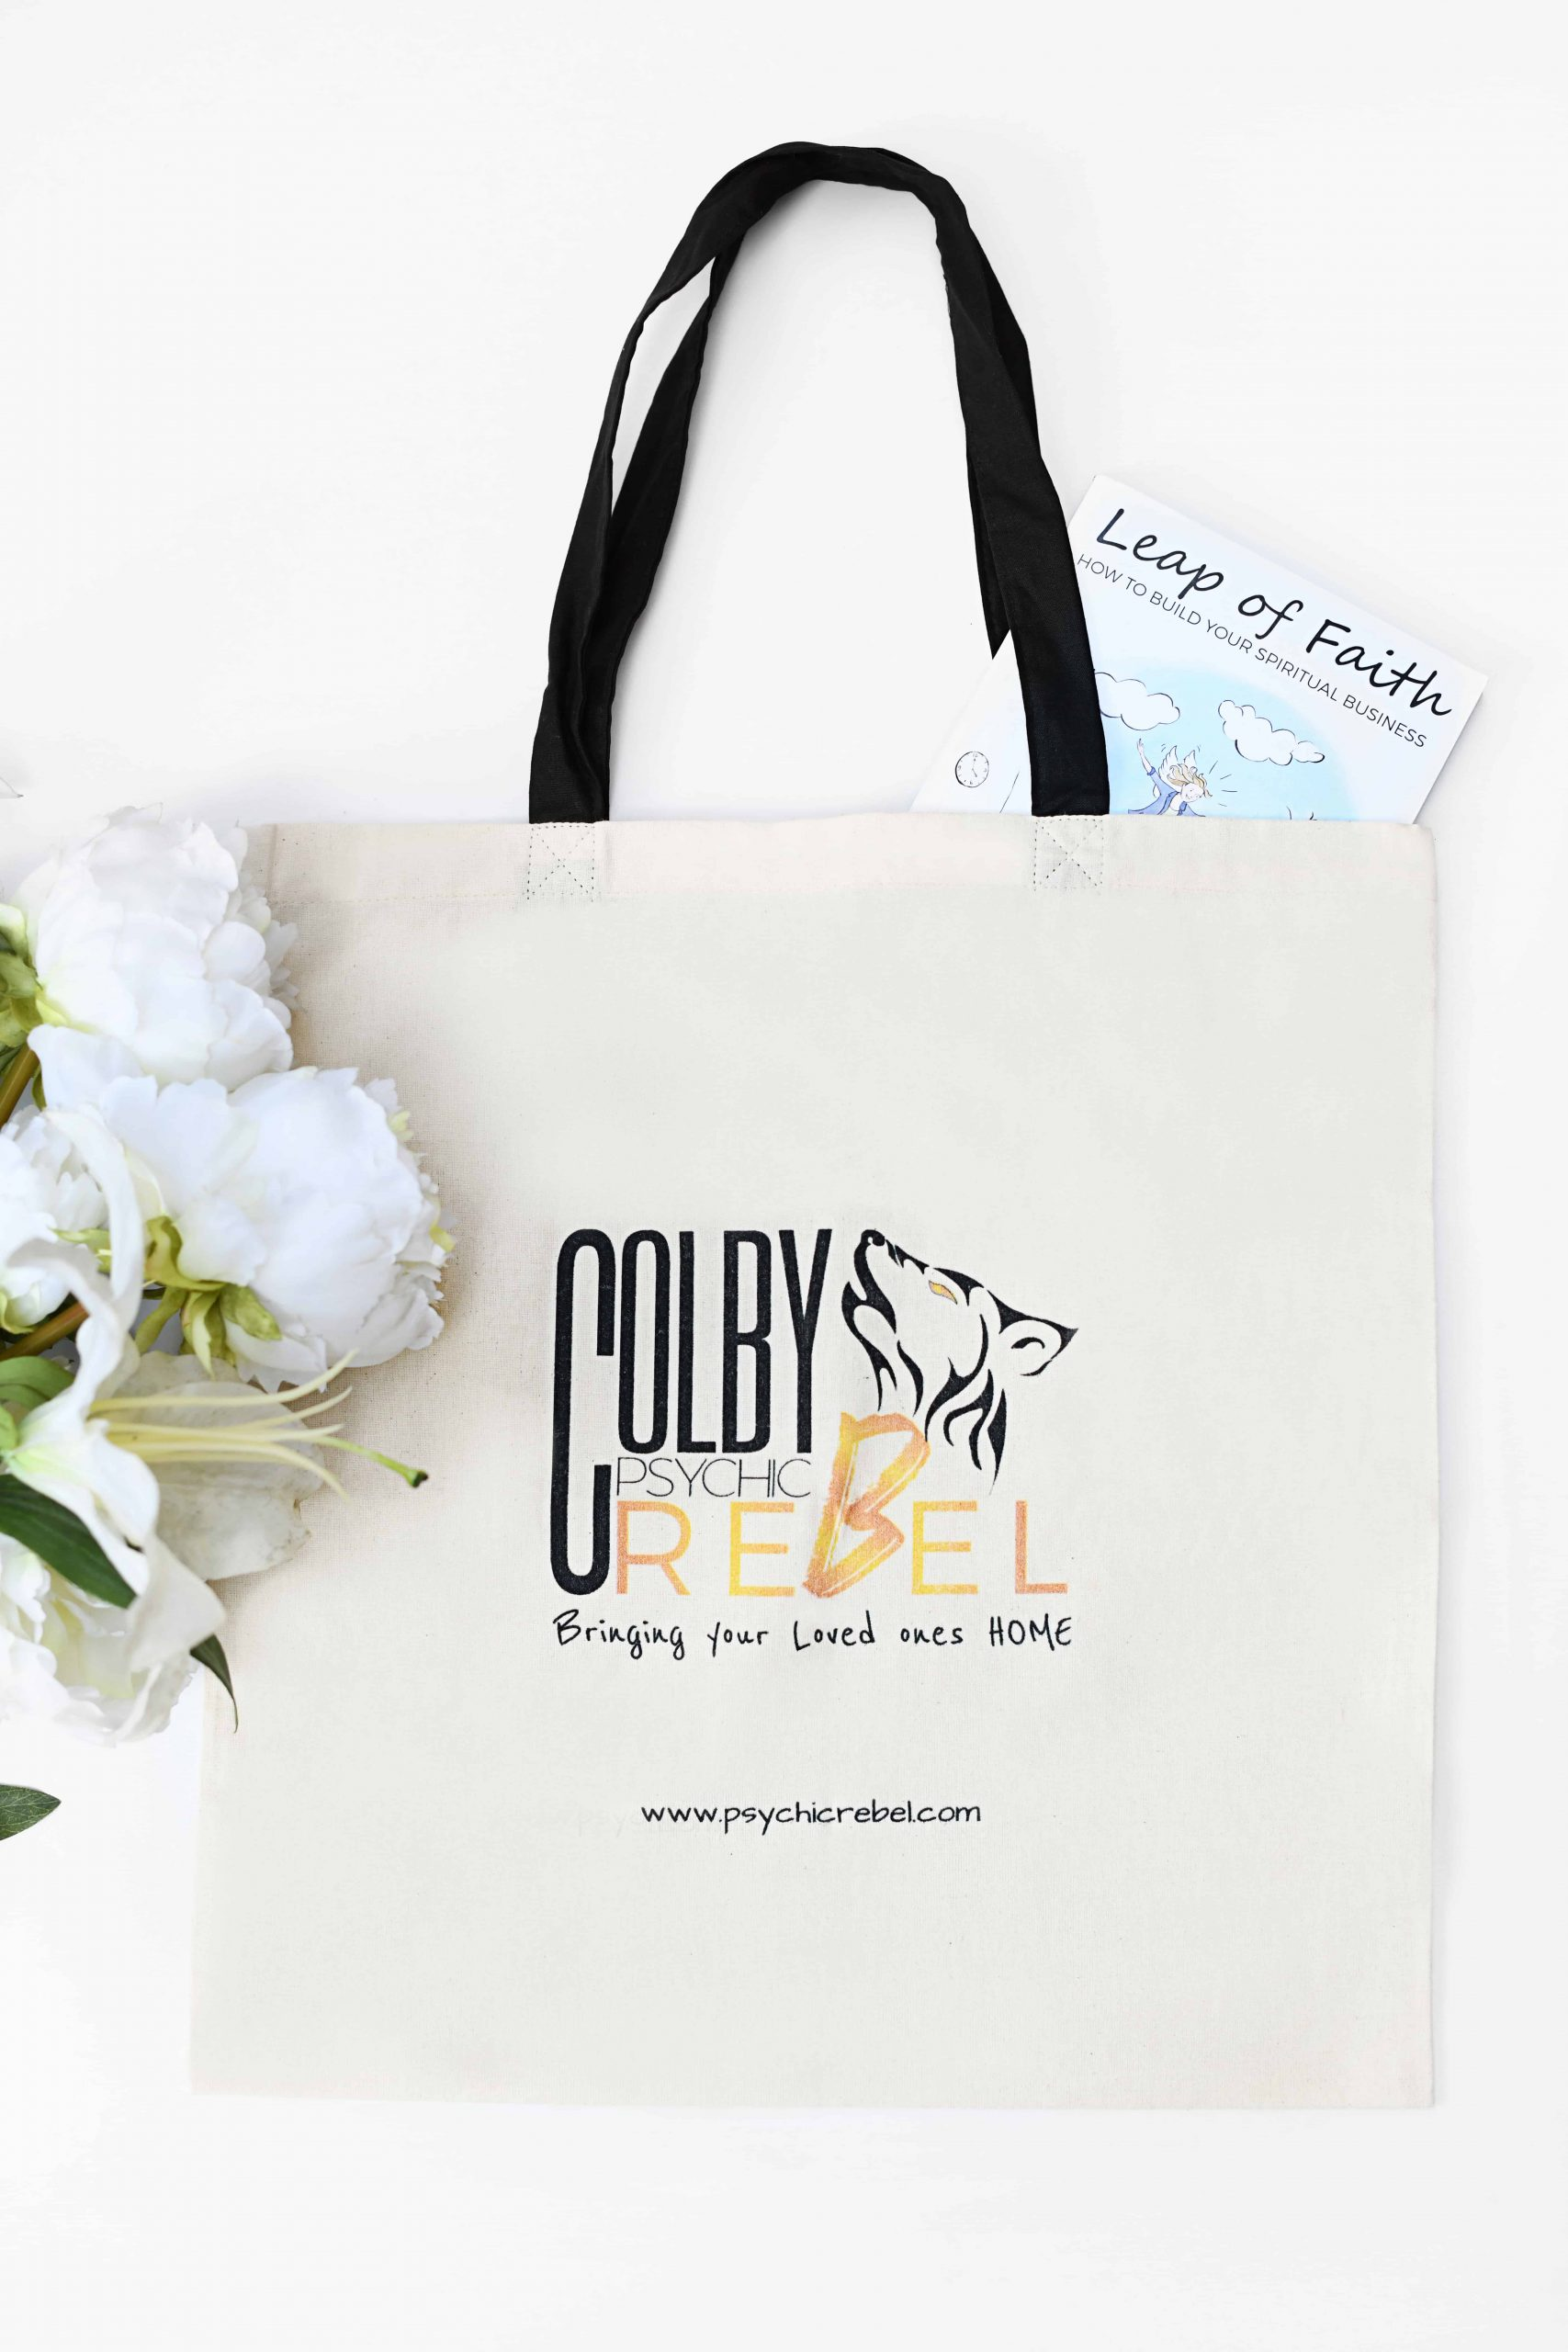 Free Gift-Canvas Bag!